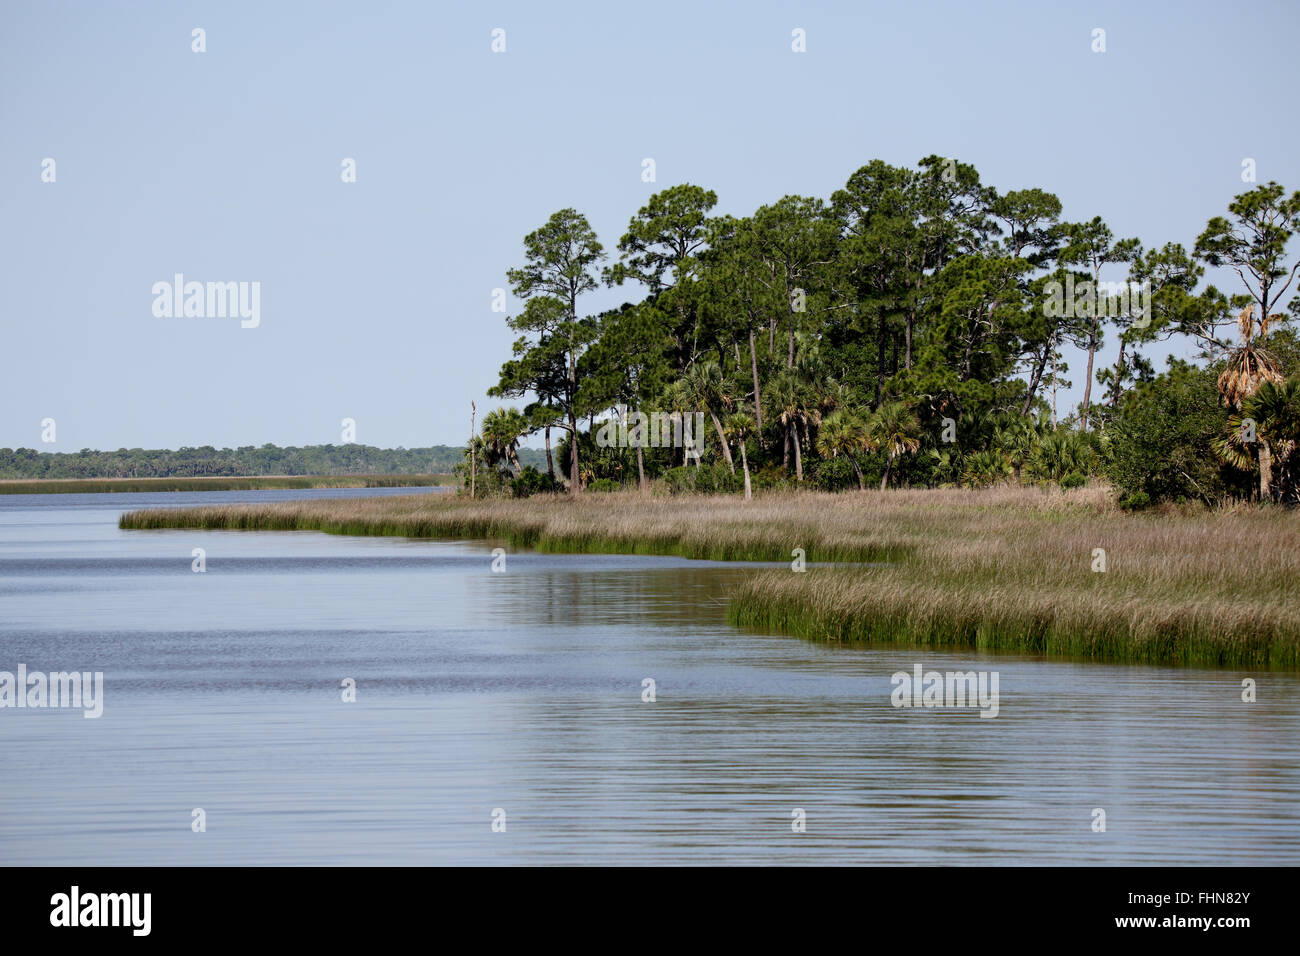 Apalachicola Bay Aquatic Preserve on a still day - Stock Image